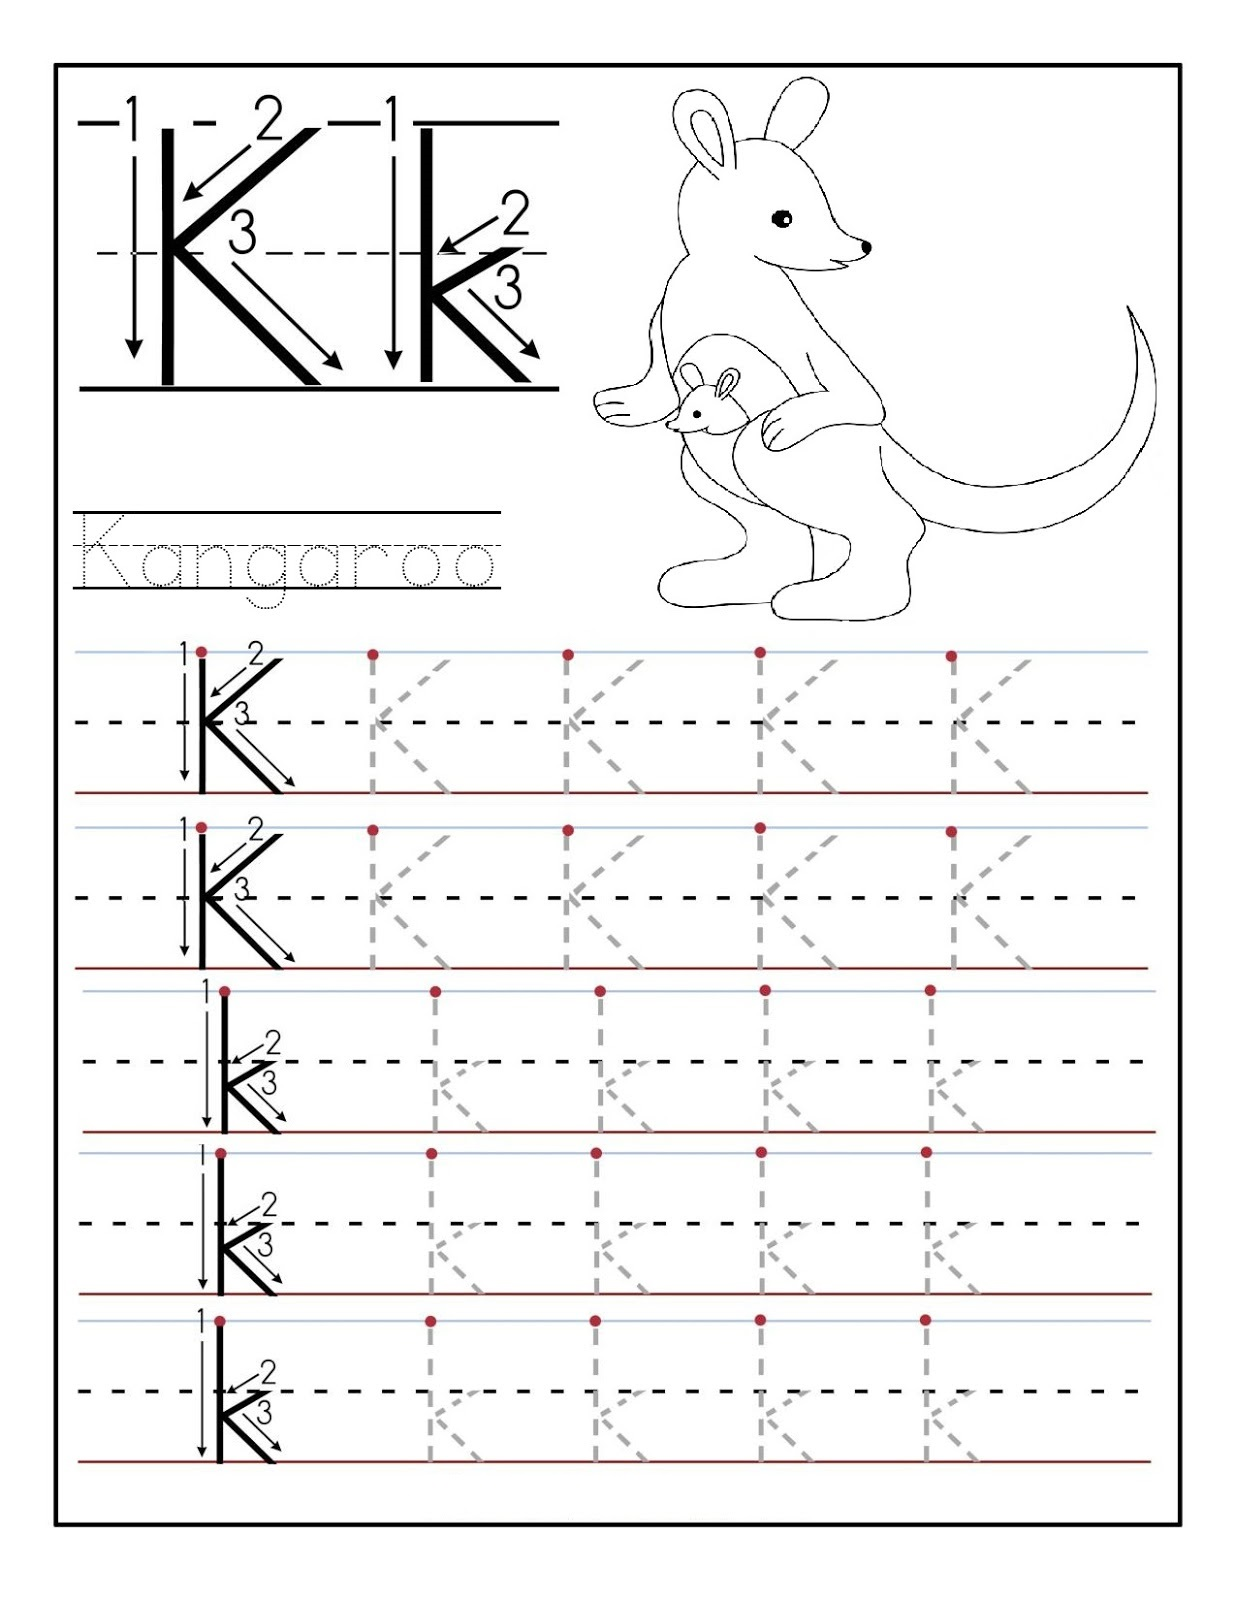 Printable letter K tracing worksheets for kindergarten Preschool – Letter K Worksheets for Preschoolers